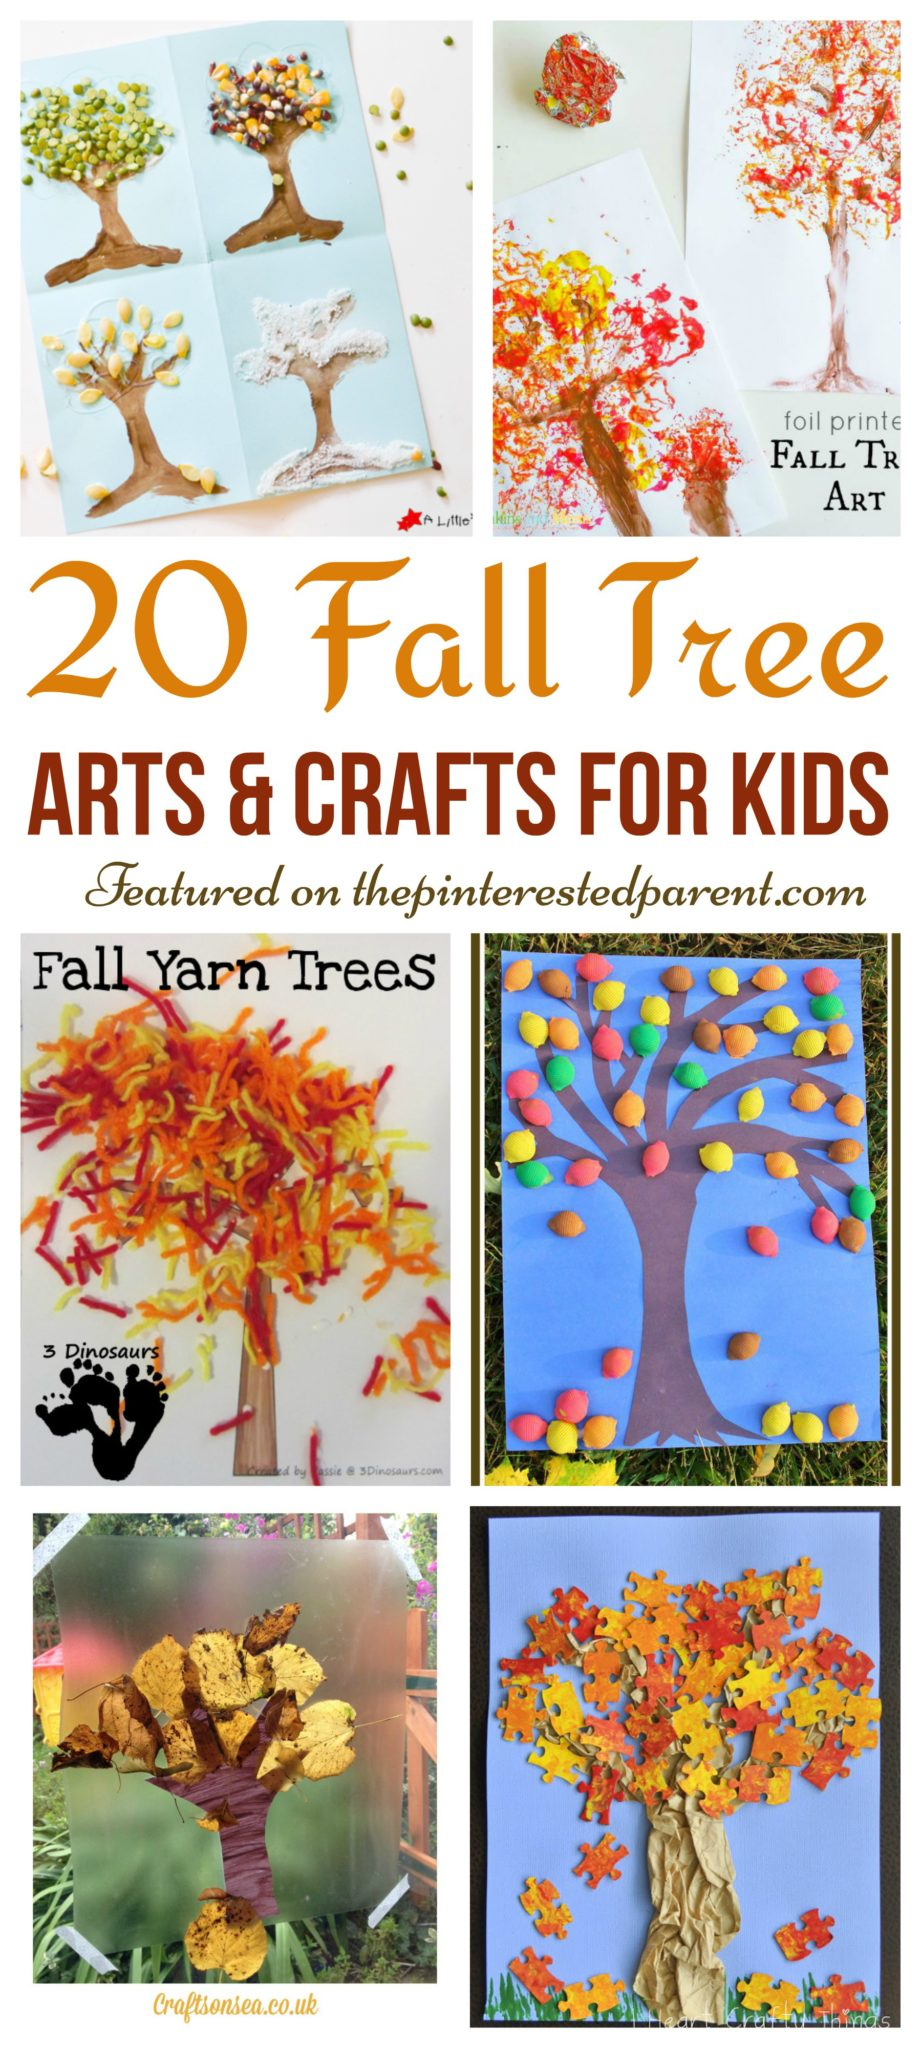 20 Fall Tree Arts & Crafts Ideas For Kids - The ...